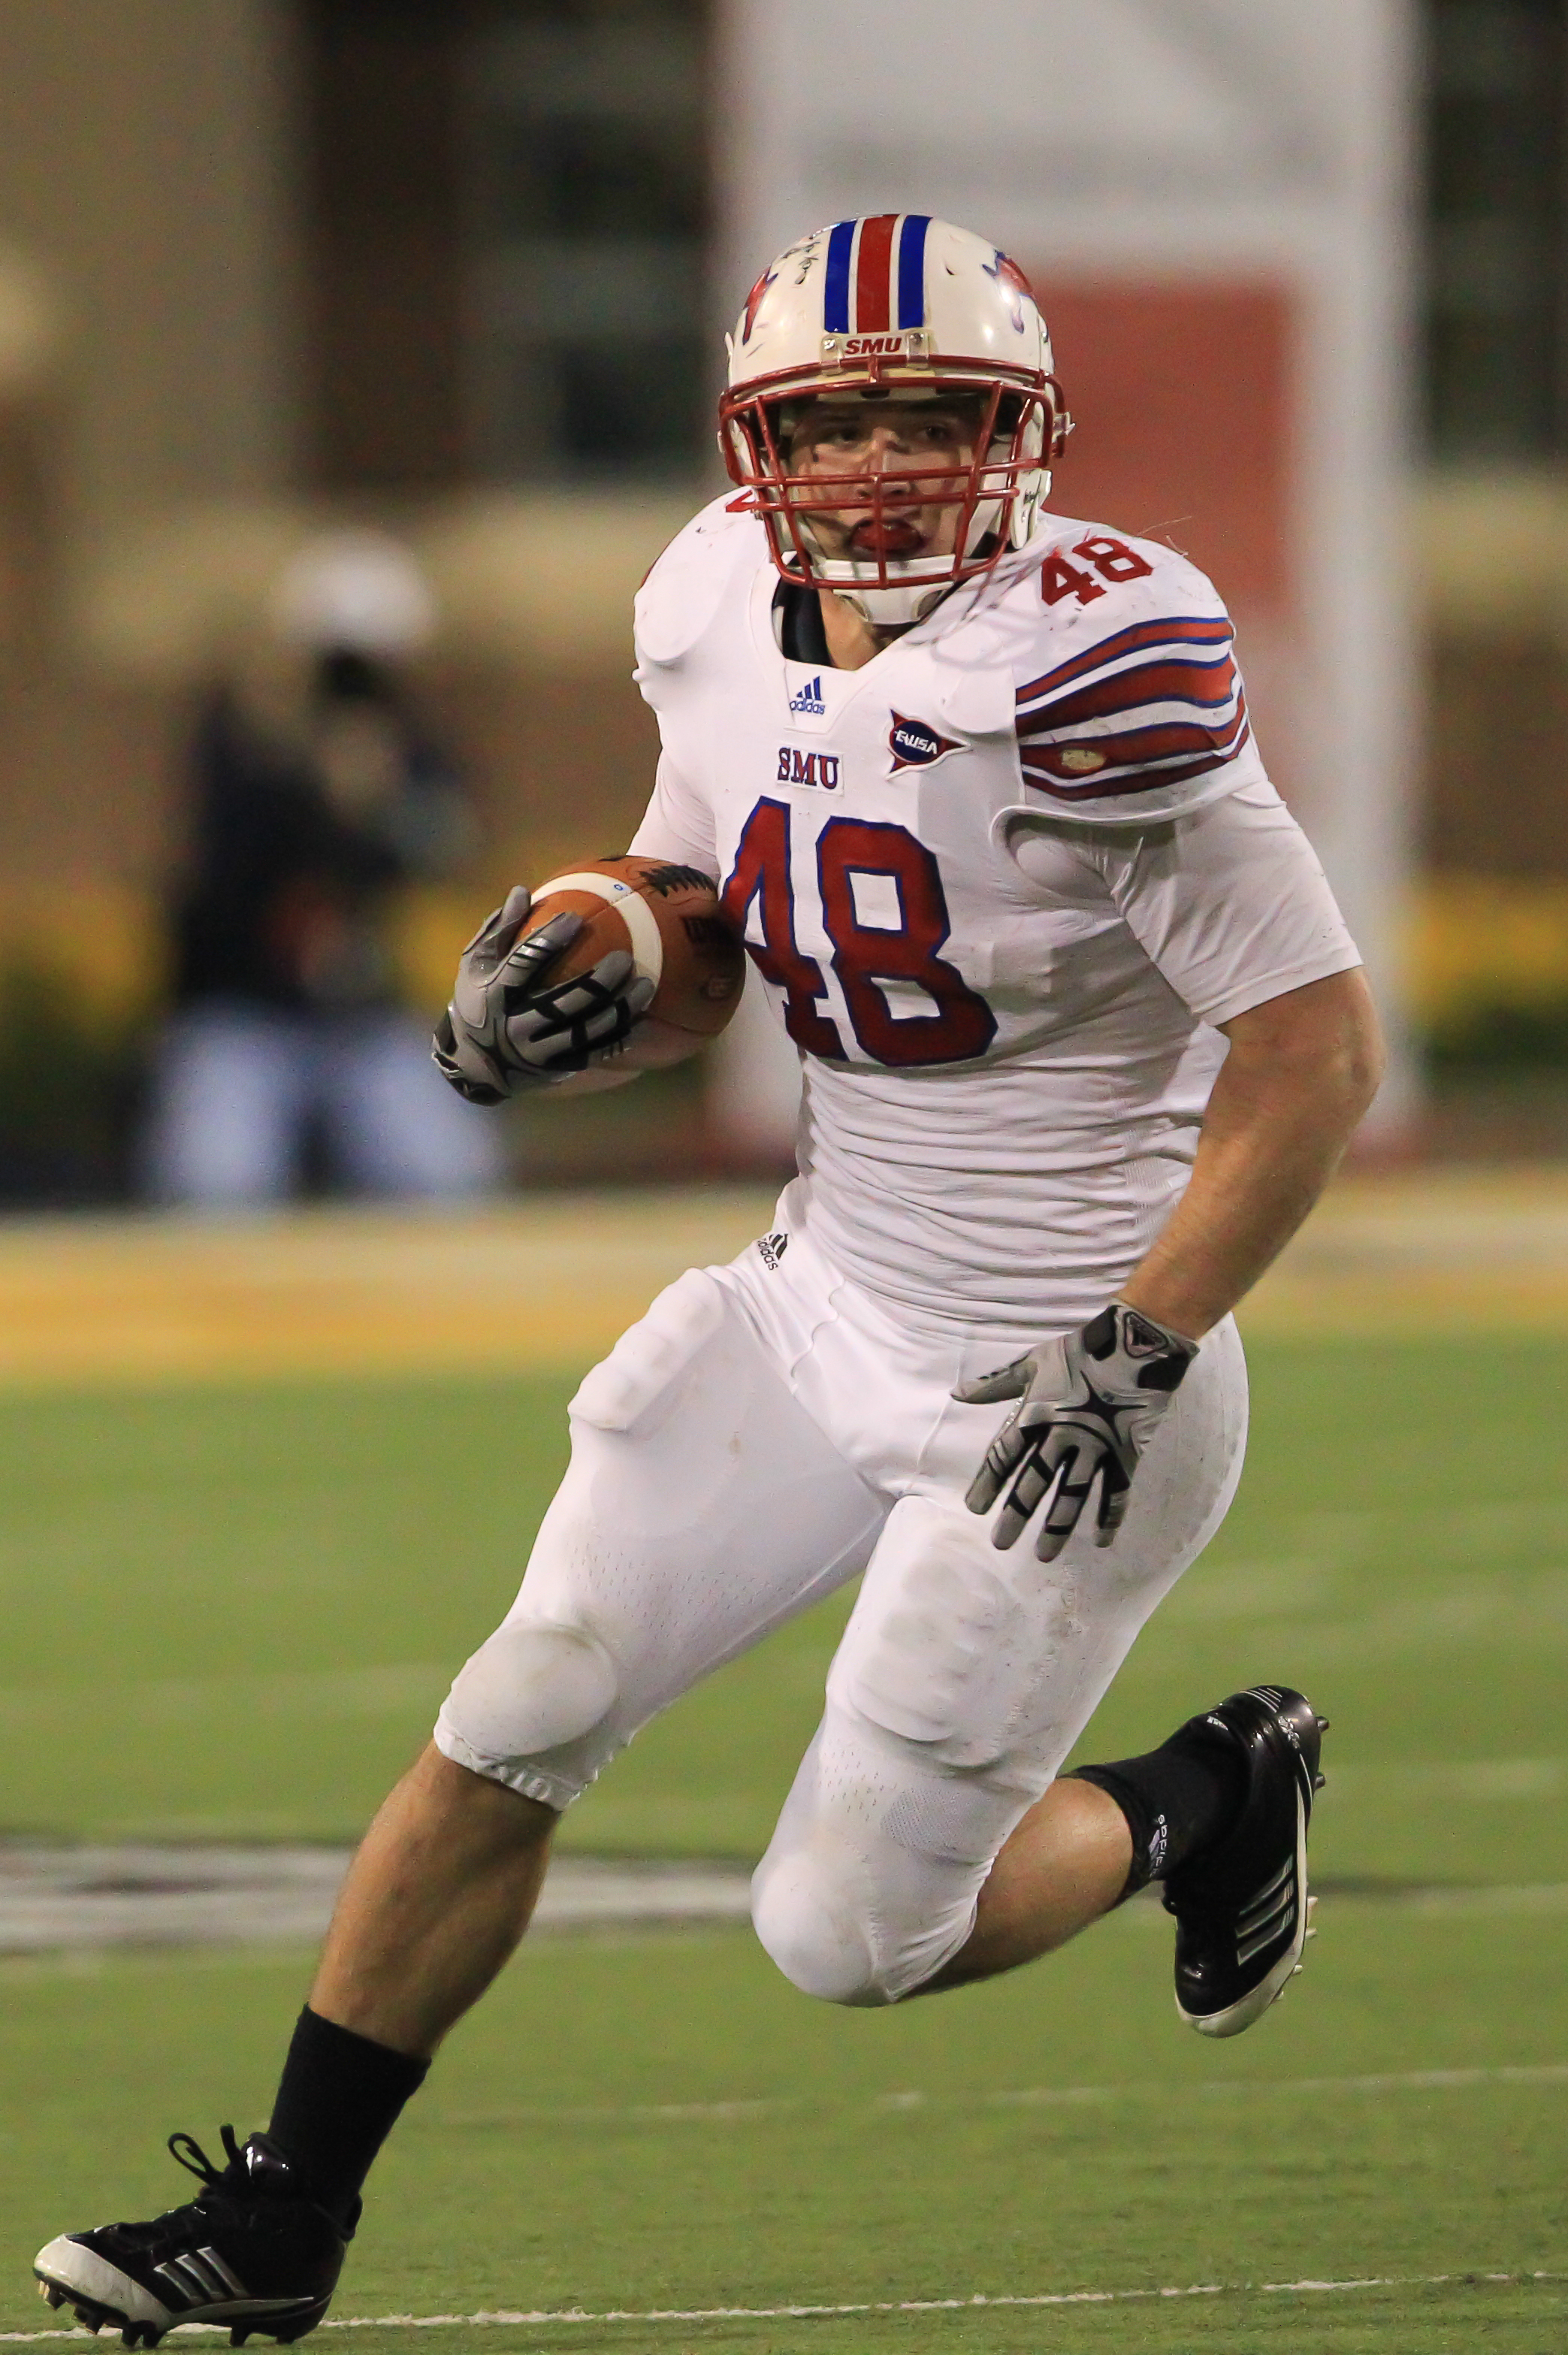 SMU's Zach Line will be going for his third consecutive 1,000-yard season this fall. (Photo provided by SMU)